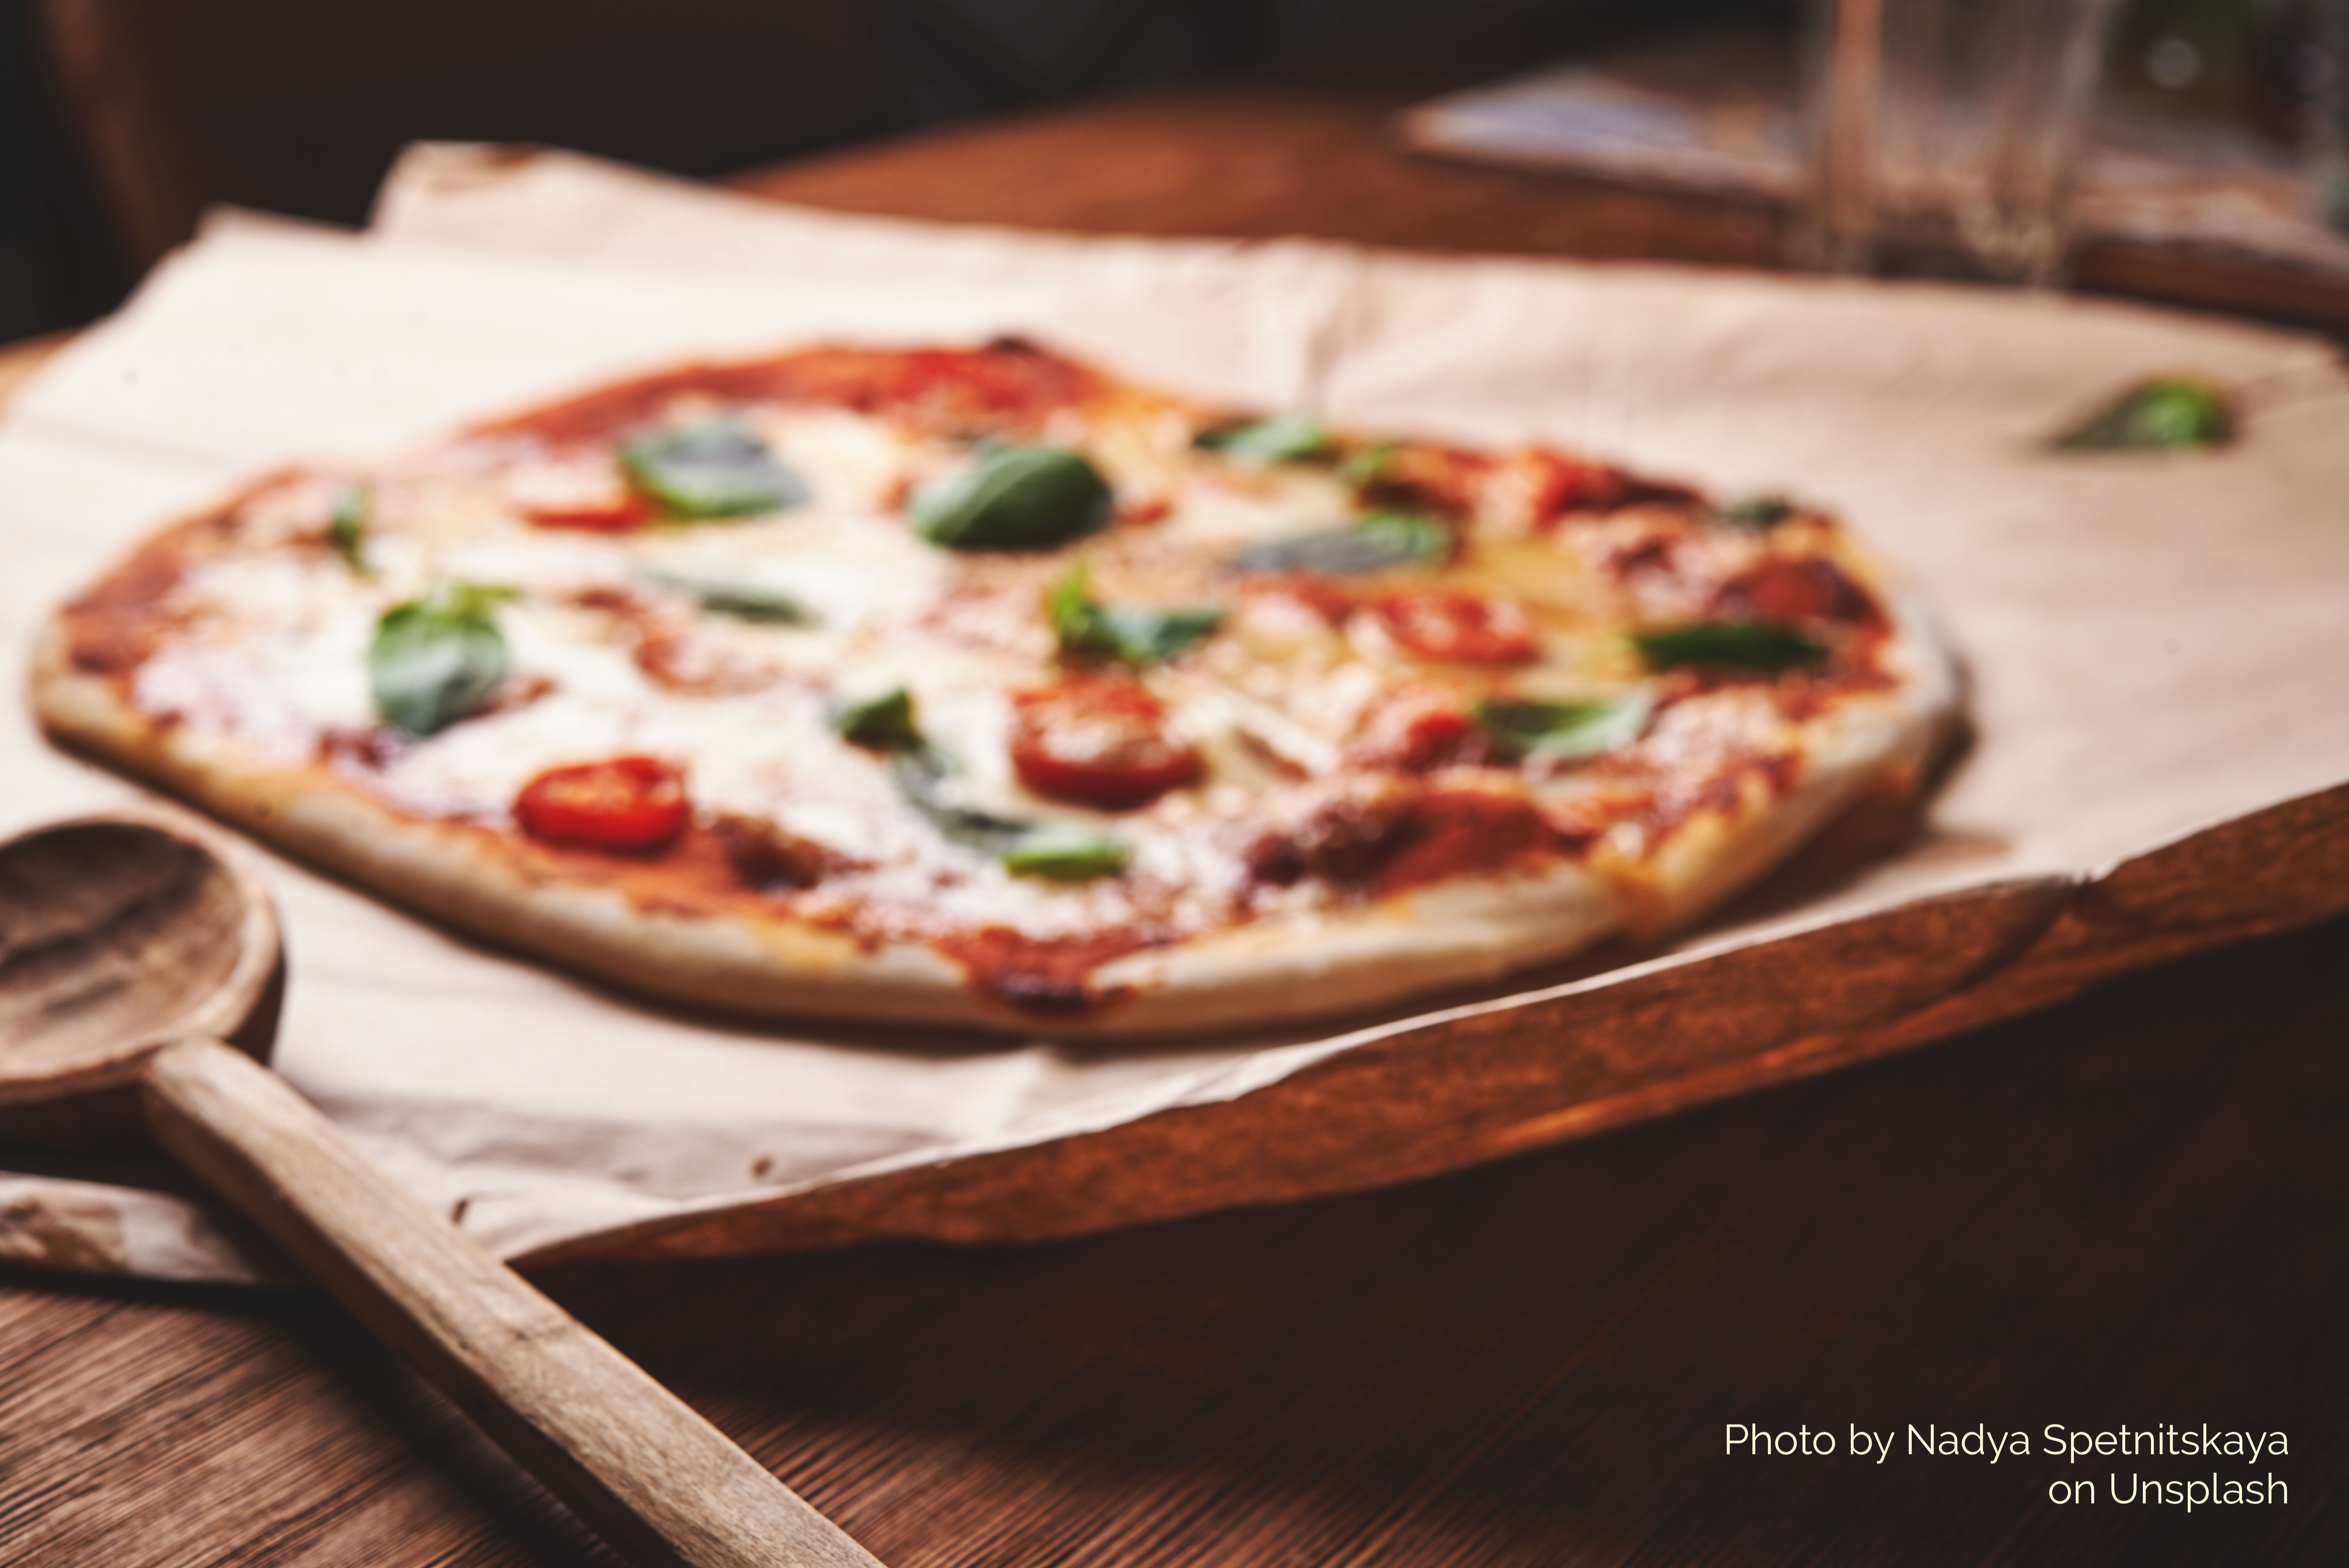 Chef-made pizza